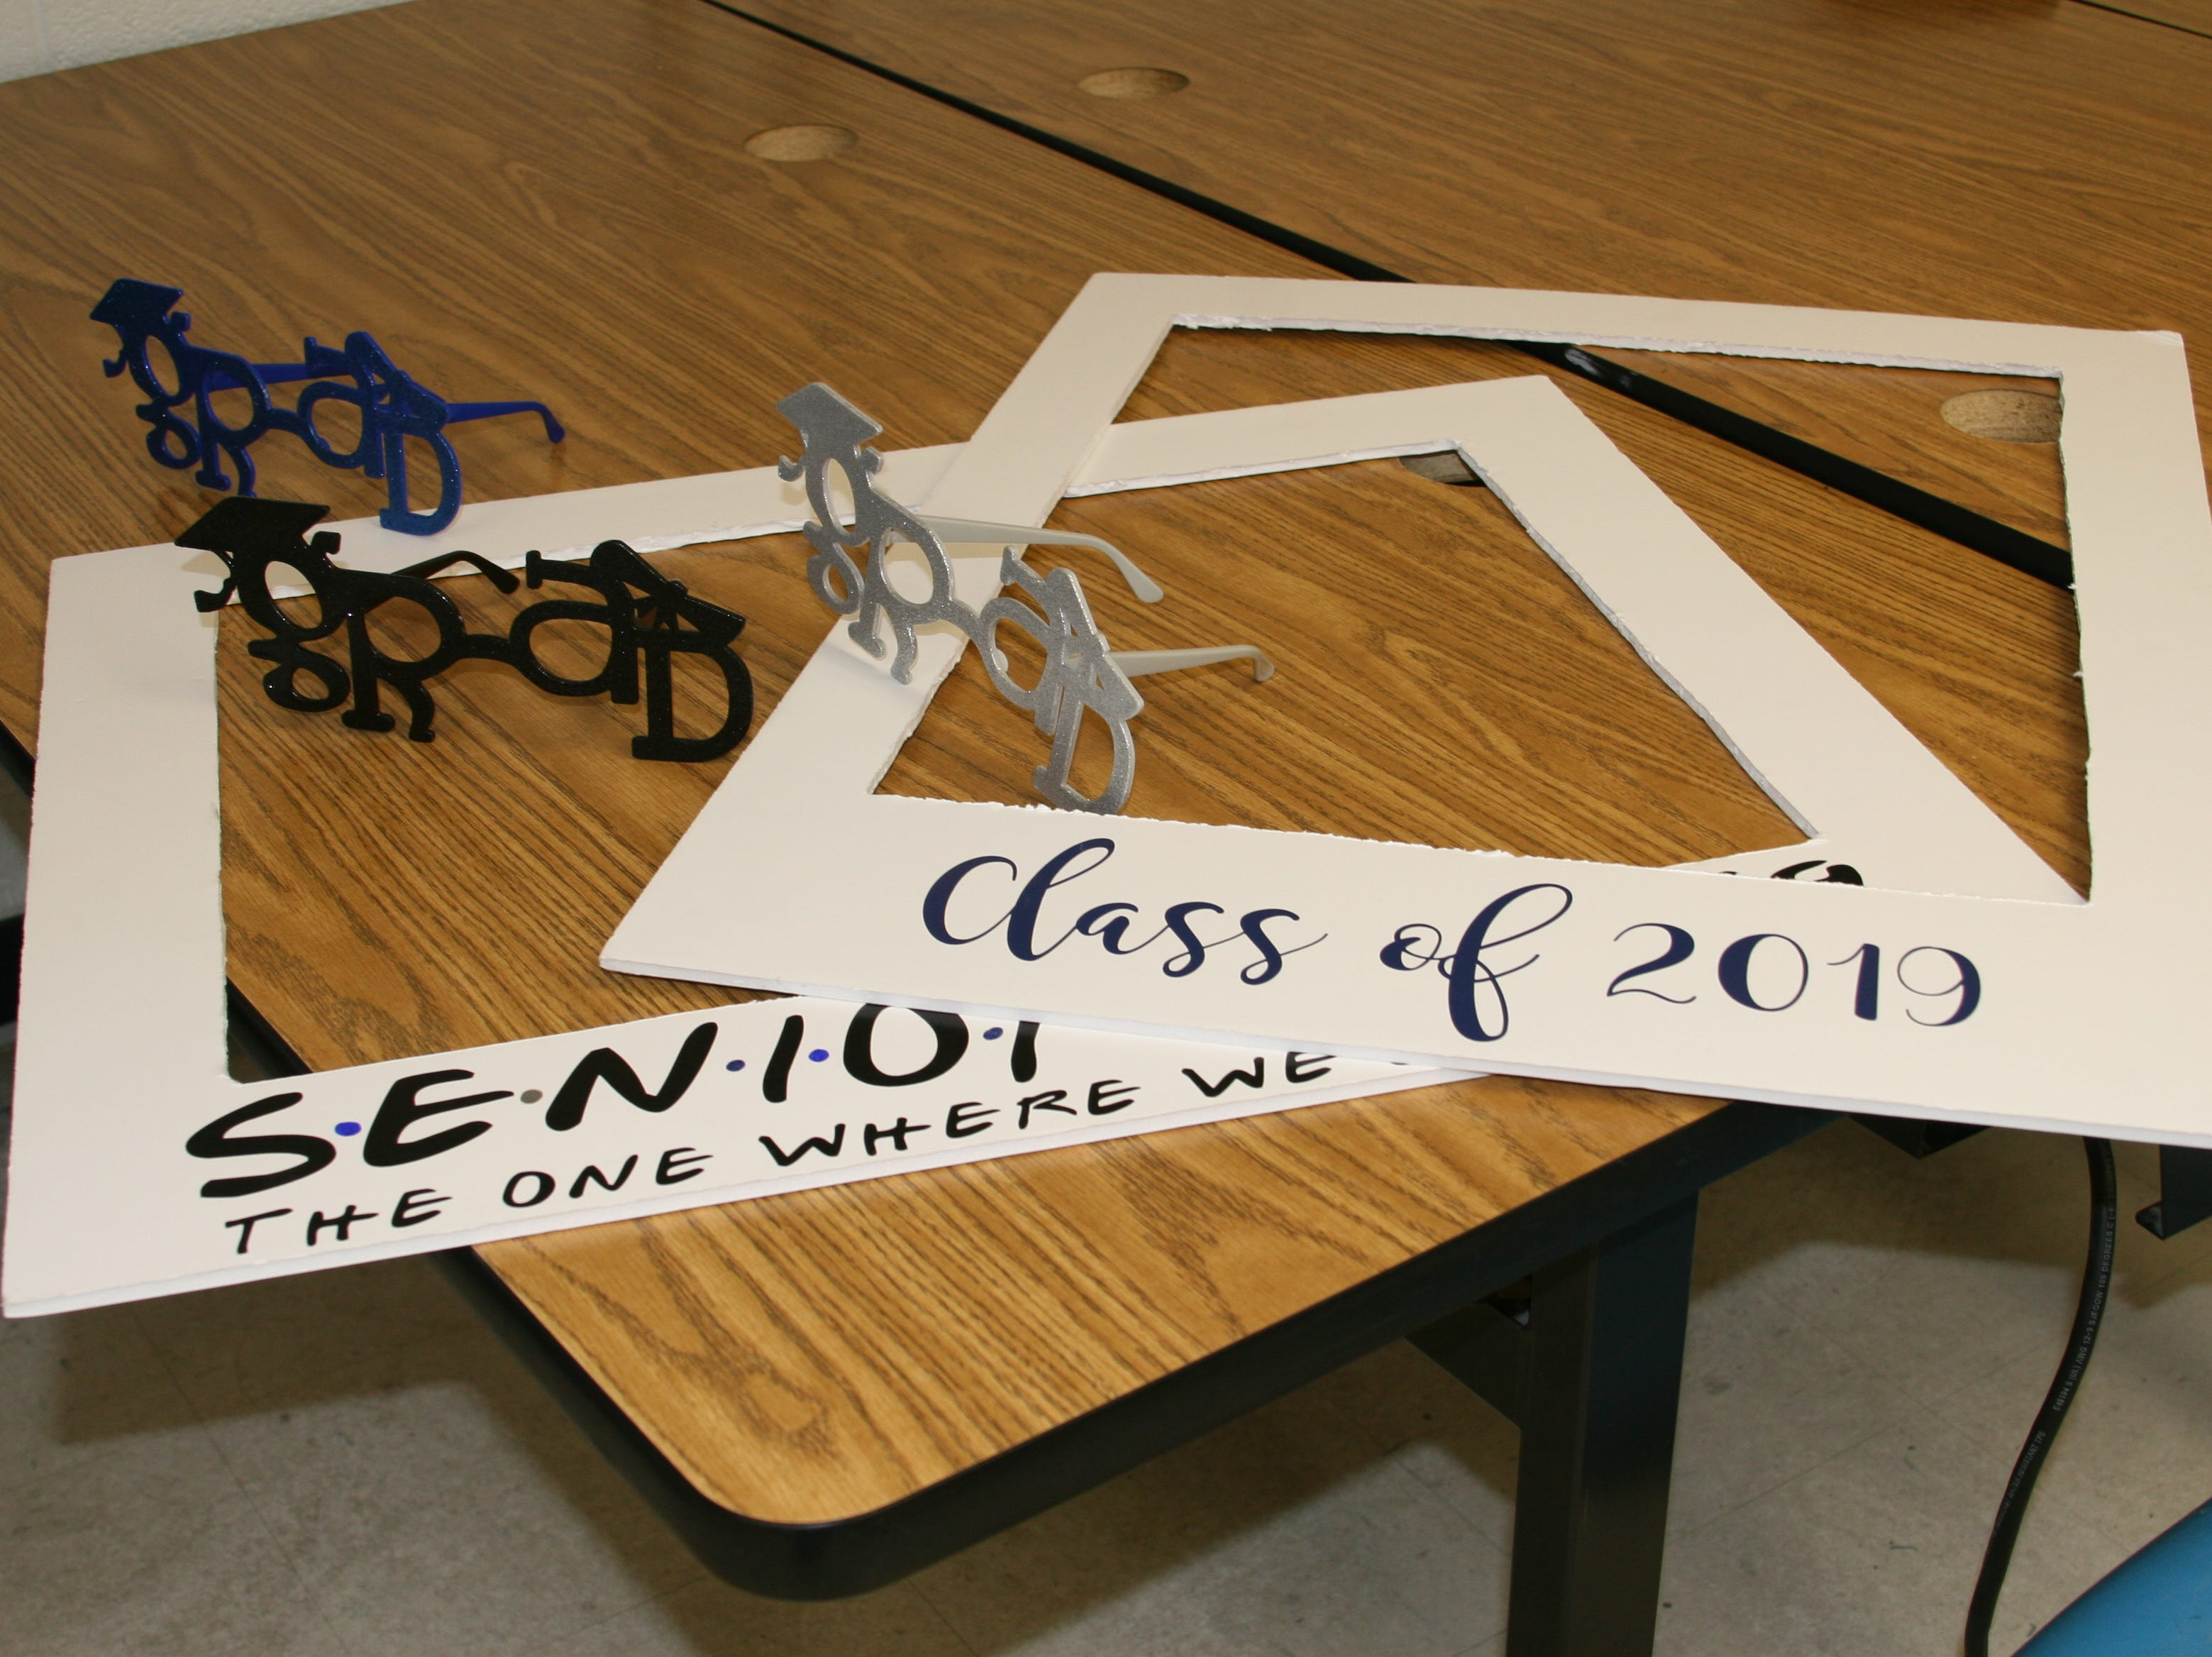 Class of 2019 props were available to Warrior graduates who posed for photographs.